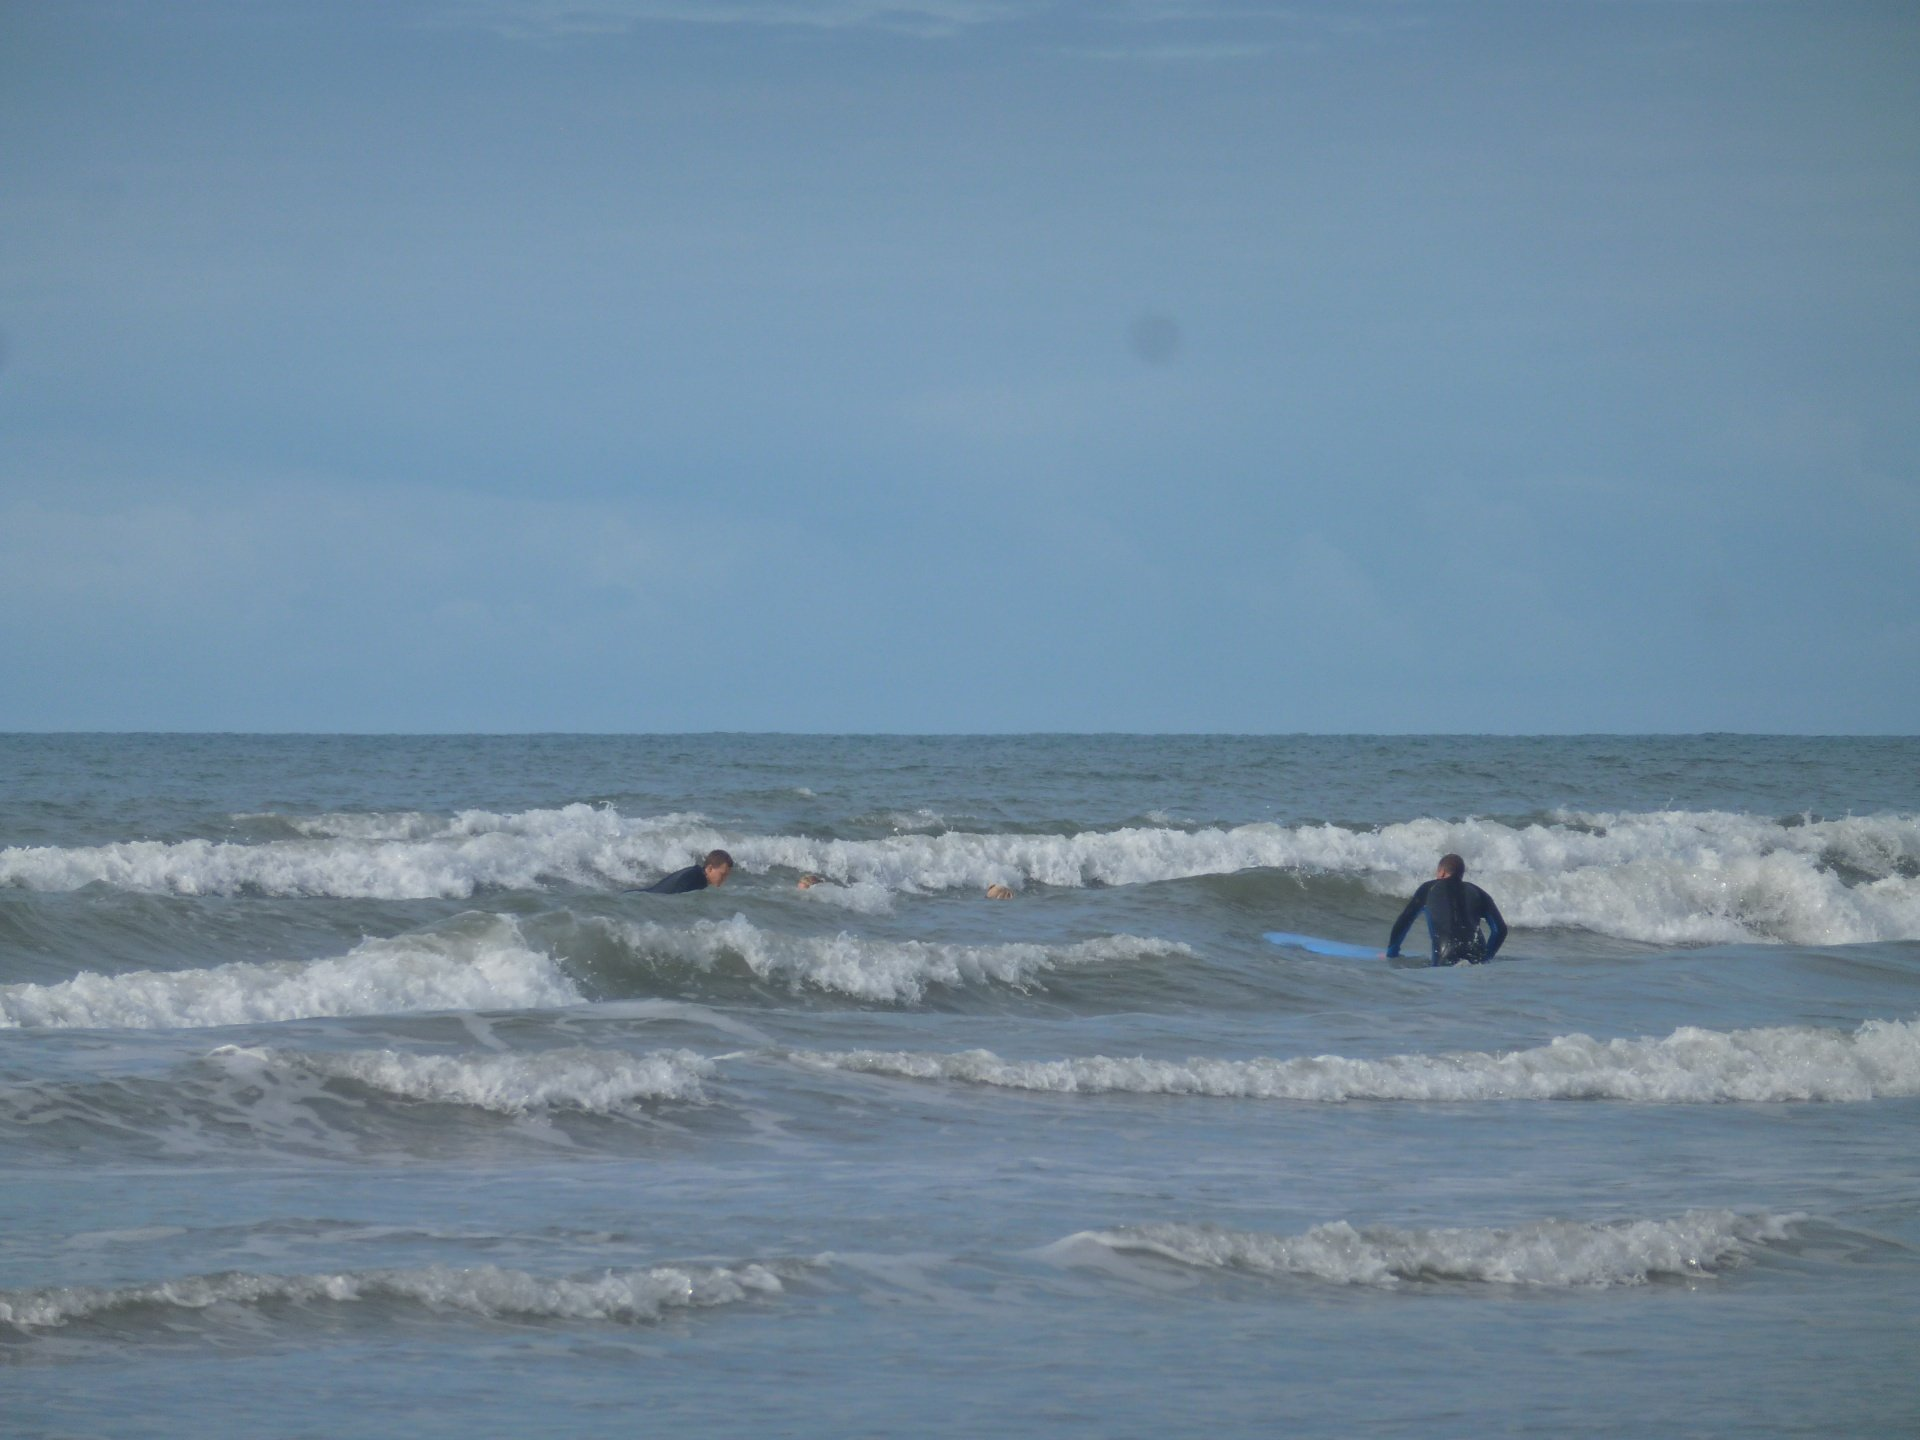 PeRis Surfing sQuadz's photo of Westward Ho!